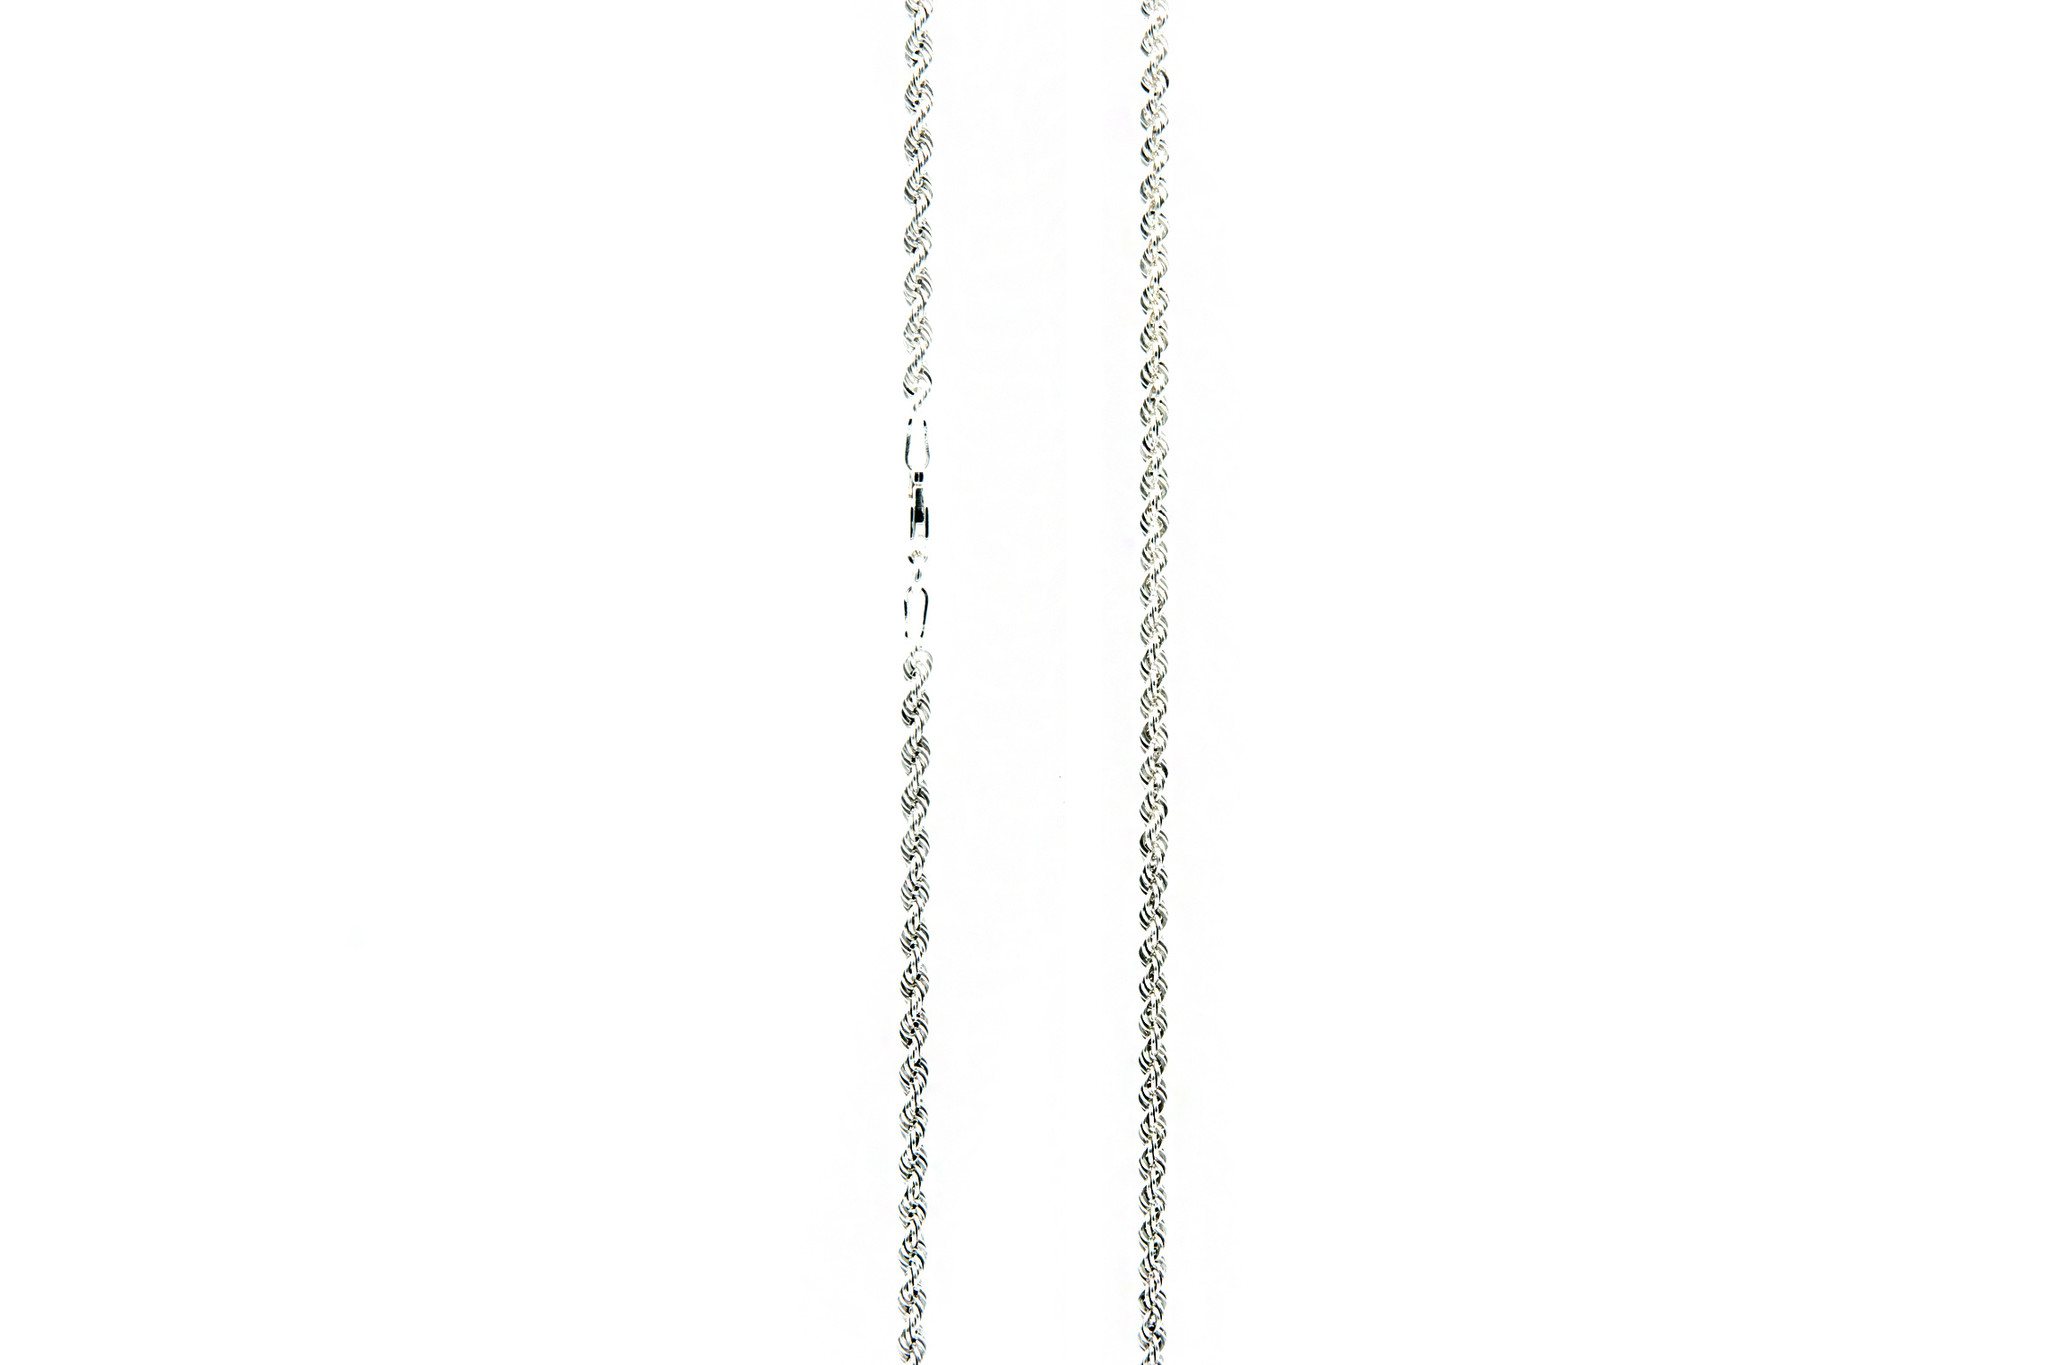 Ketting rope chain zilver 3mm-3